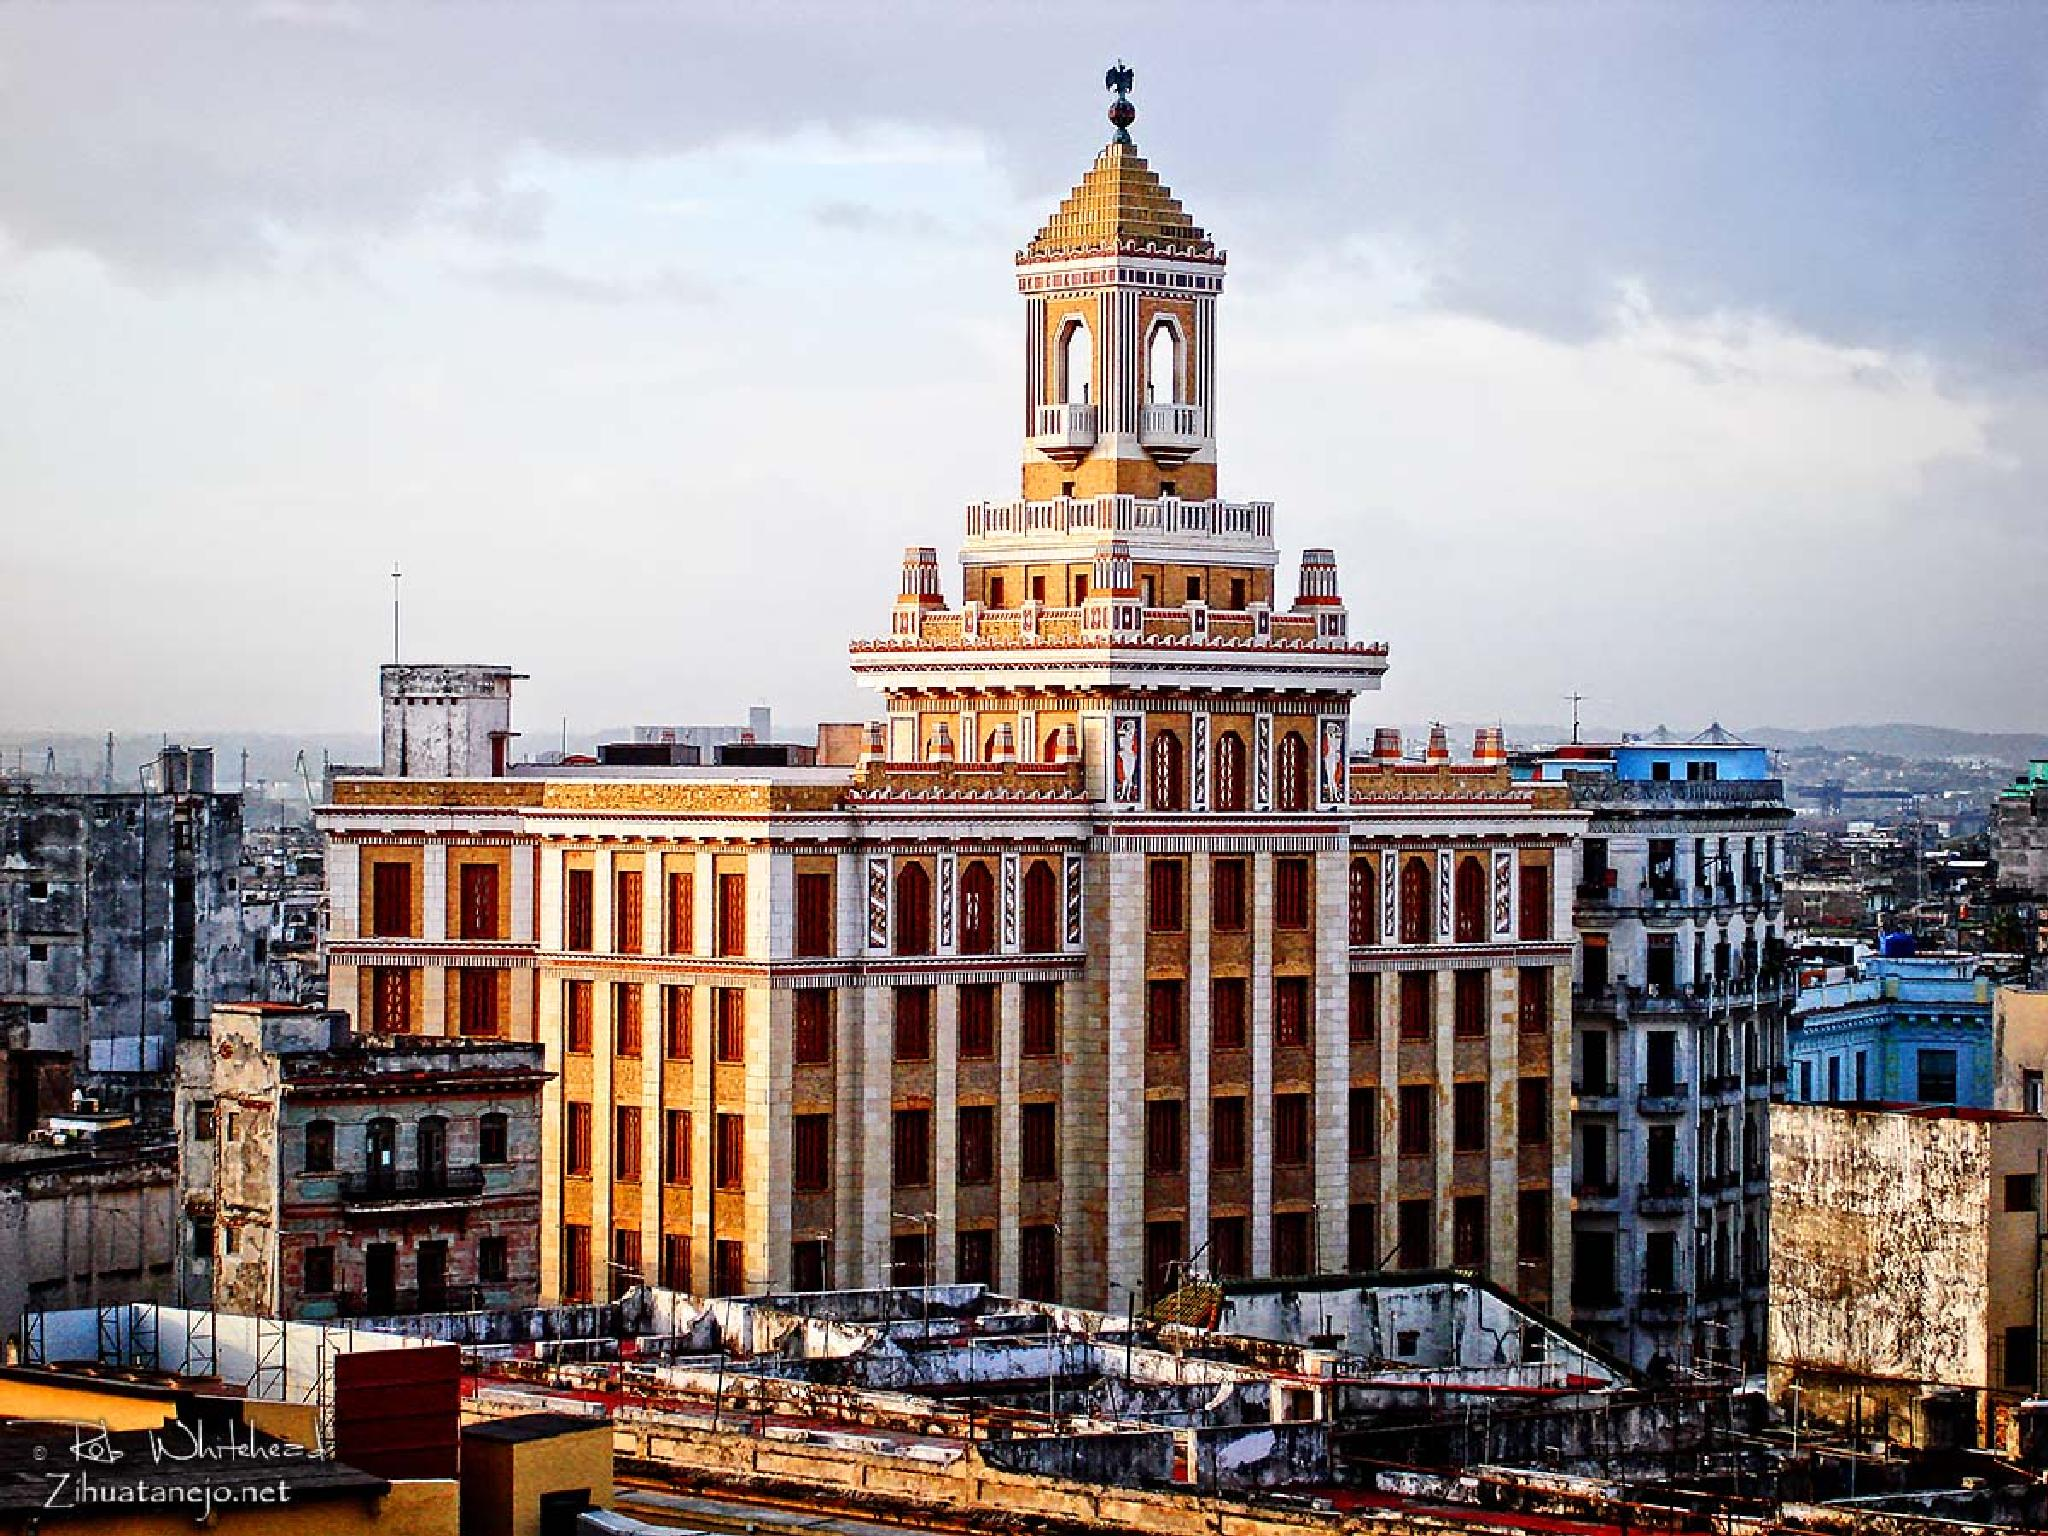 Bacardi Building in Old Havana by Rob Whitehead